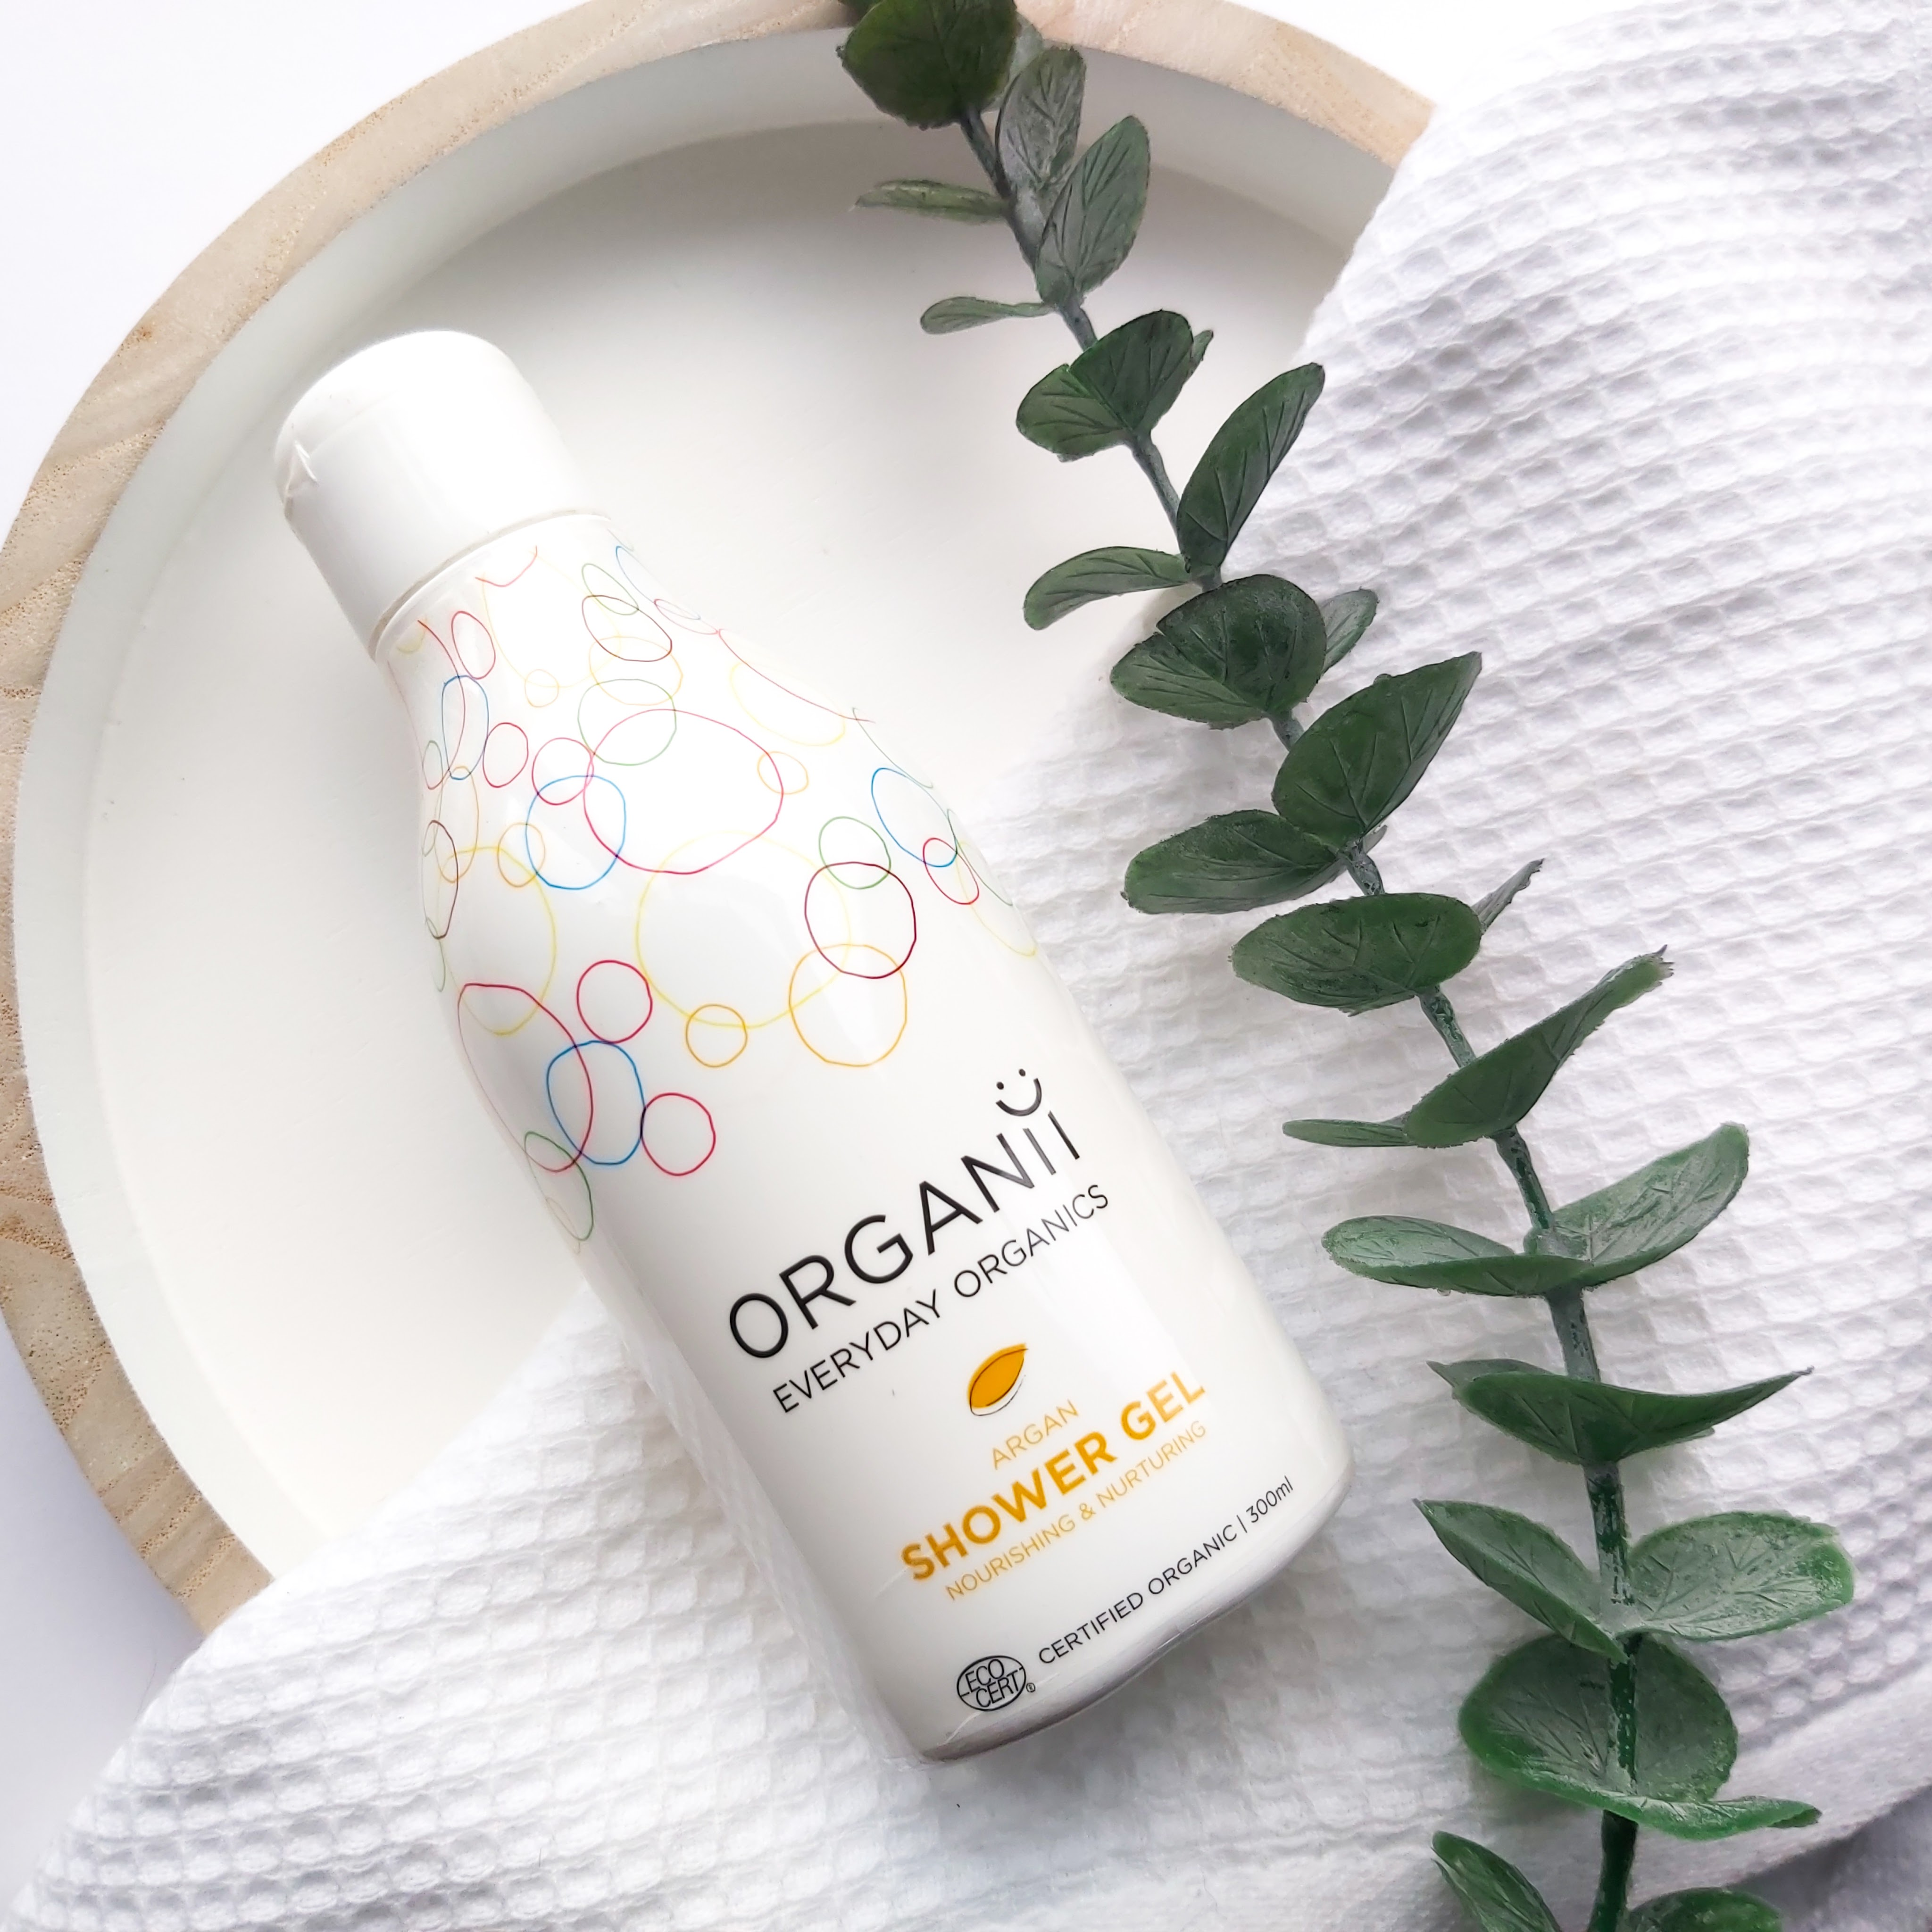 Organii Every Day Organics Argan Shower Gel review by Beauty Folio, Natural and Green Beauty Blogger.